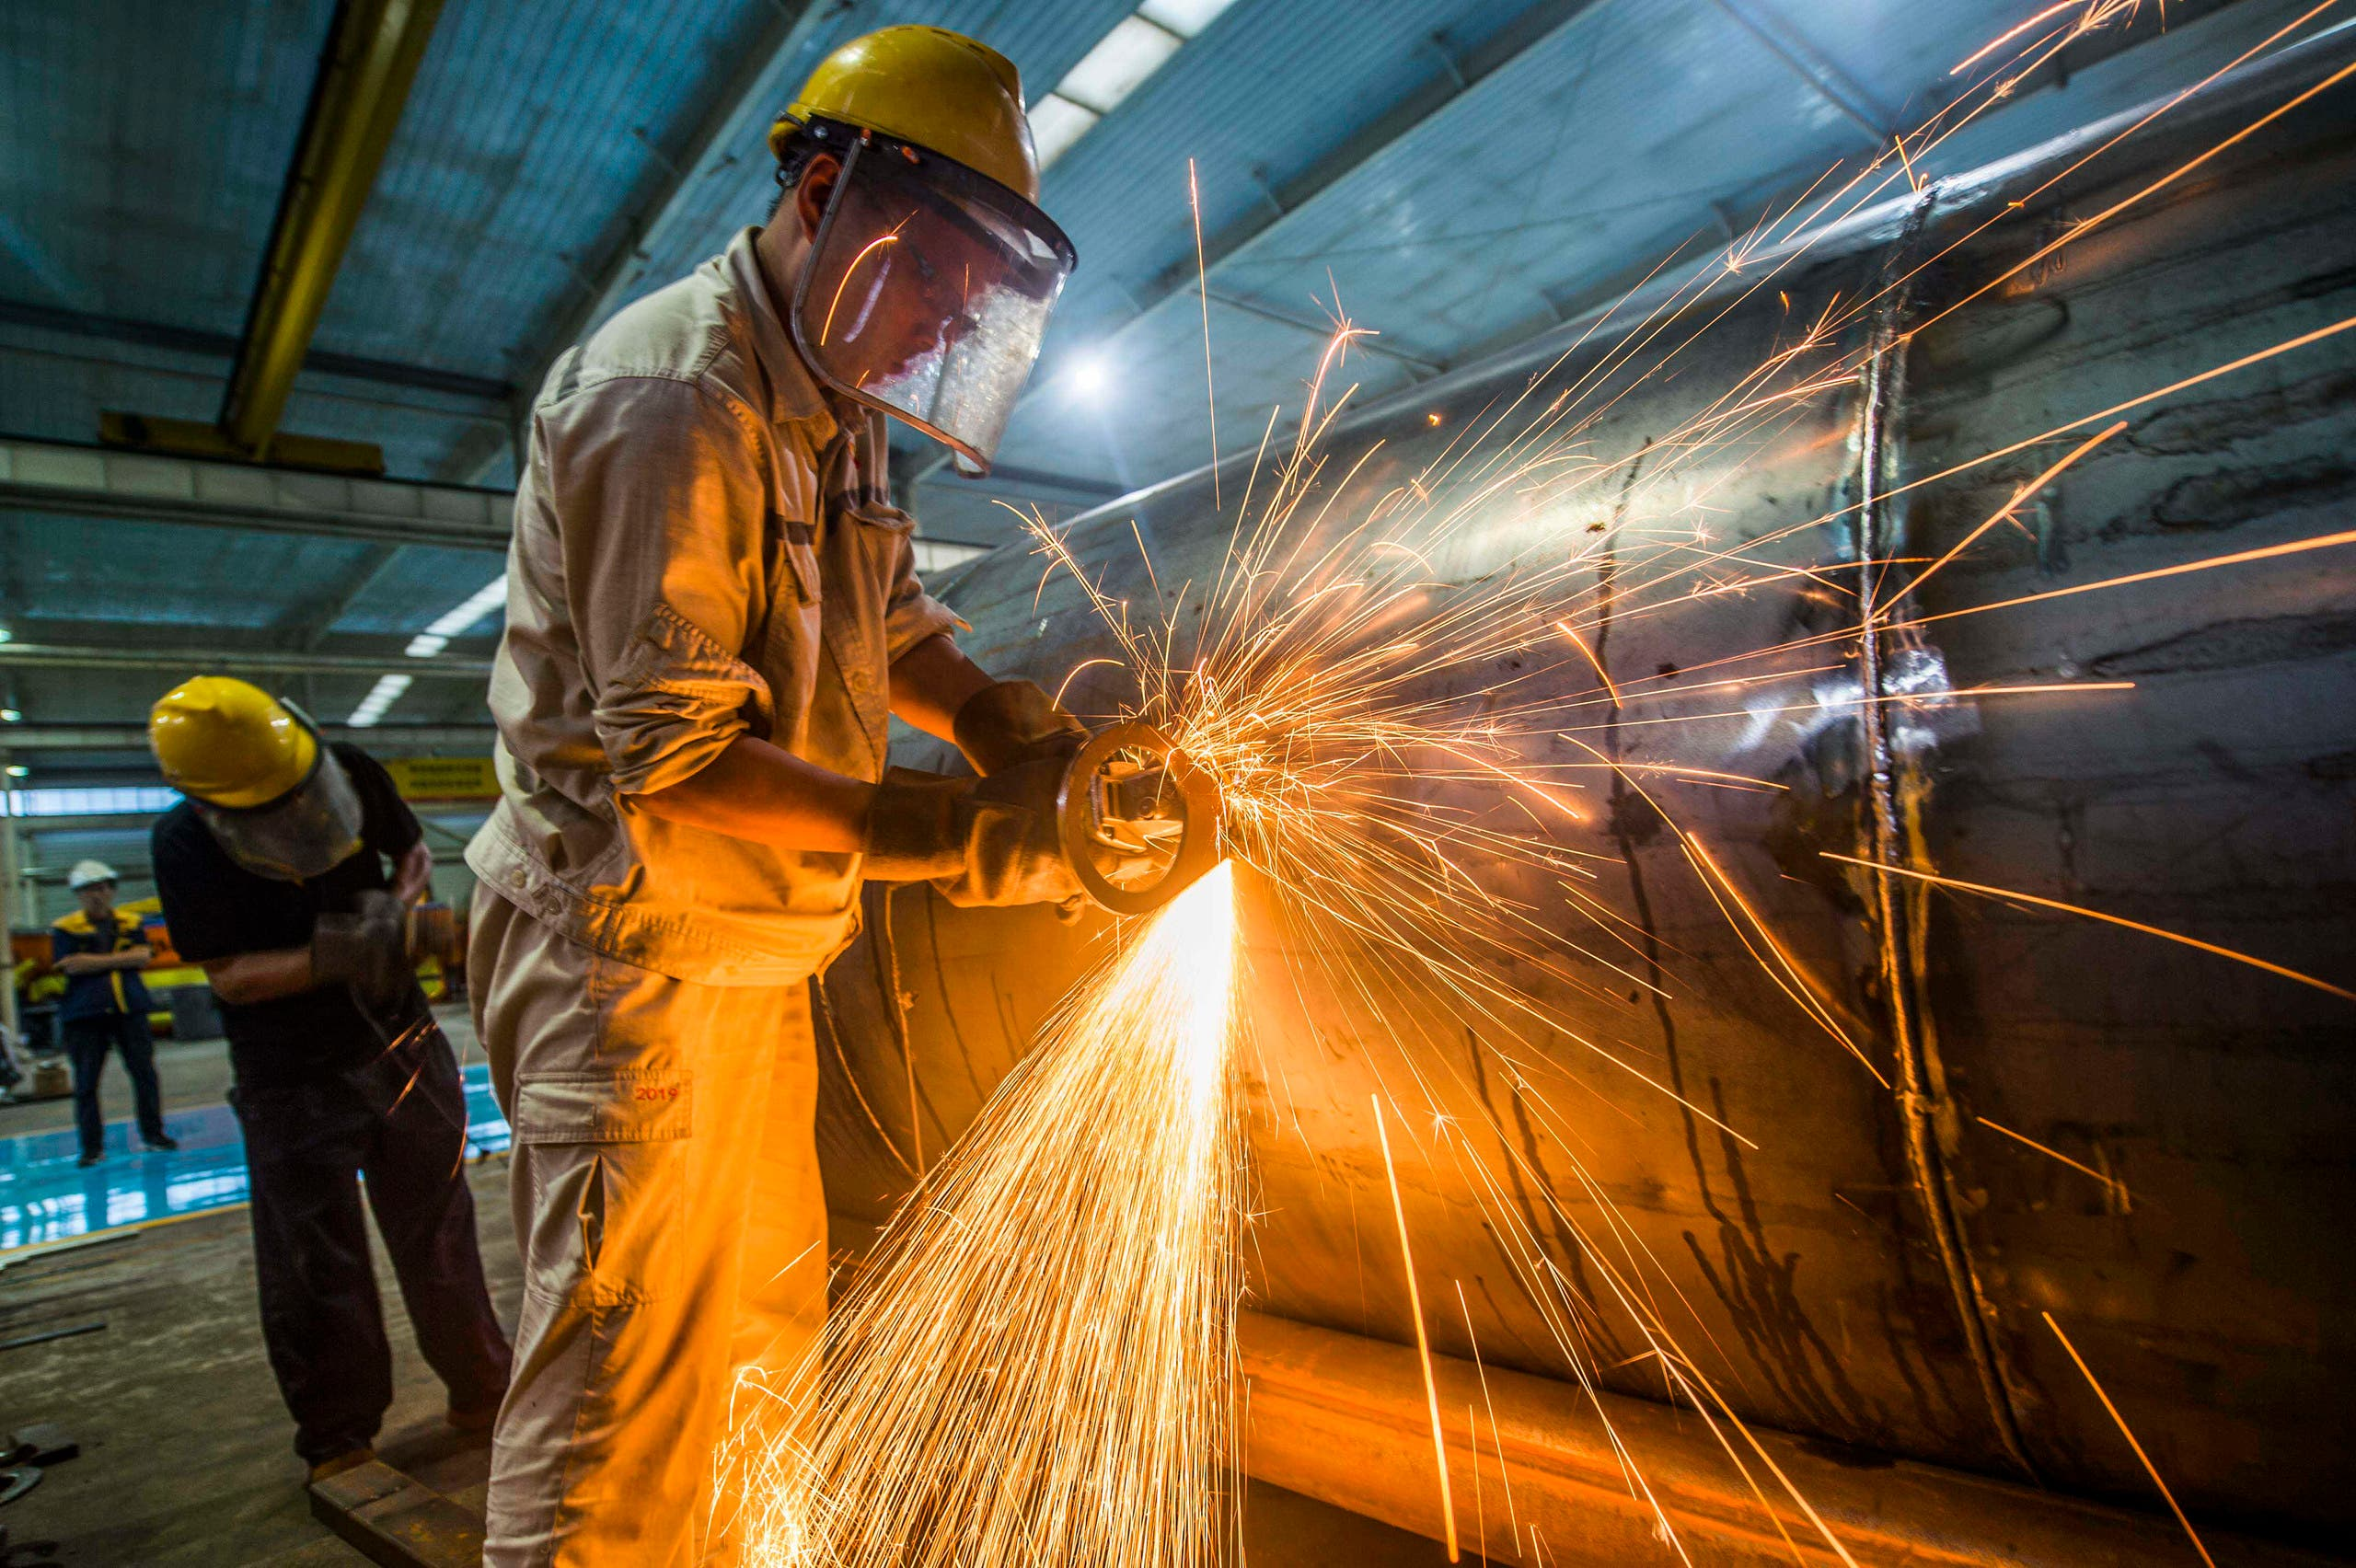 A worker welds medal truck parts at a factory in Weifang in China's eastern Shandong province on August 14, 2020. (AFP)